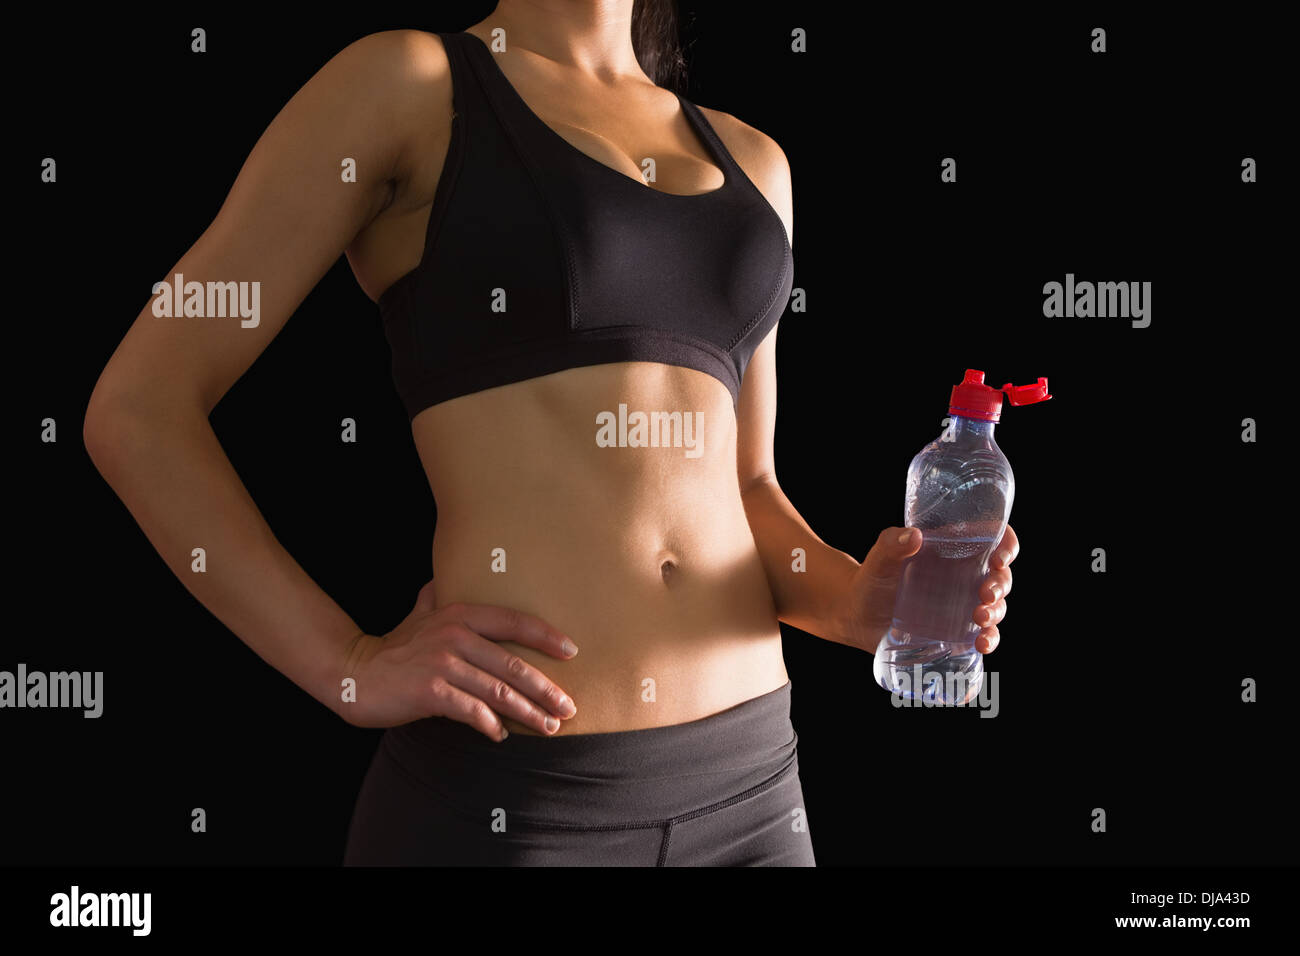 Mid section of slim woman holding a bottle of water - Stock Image